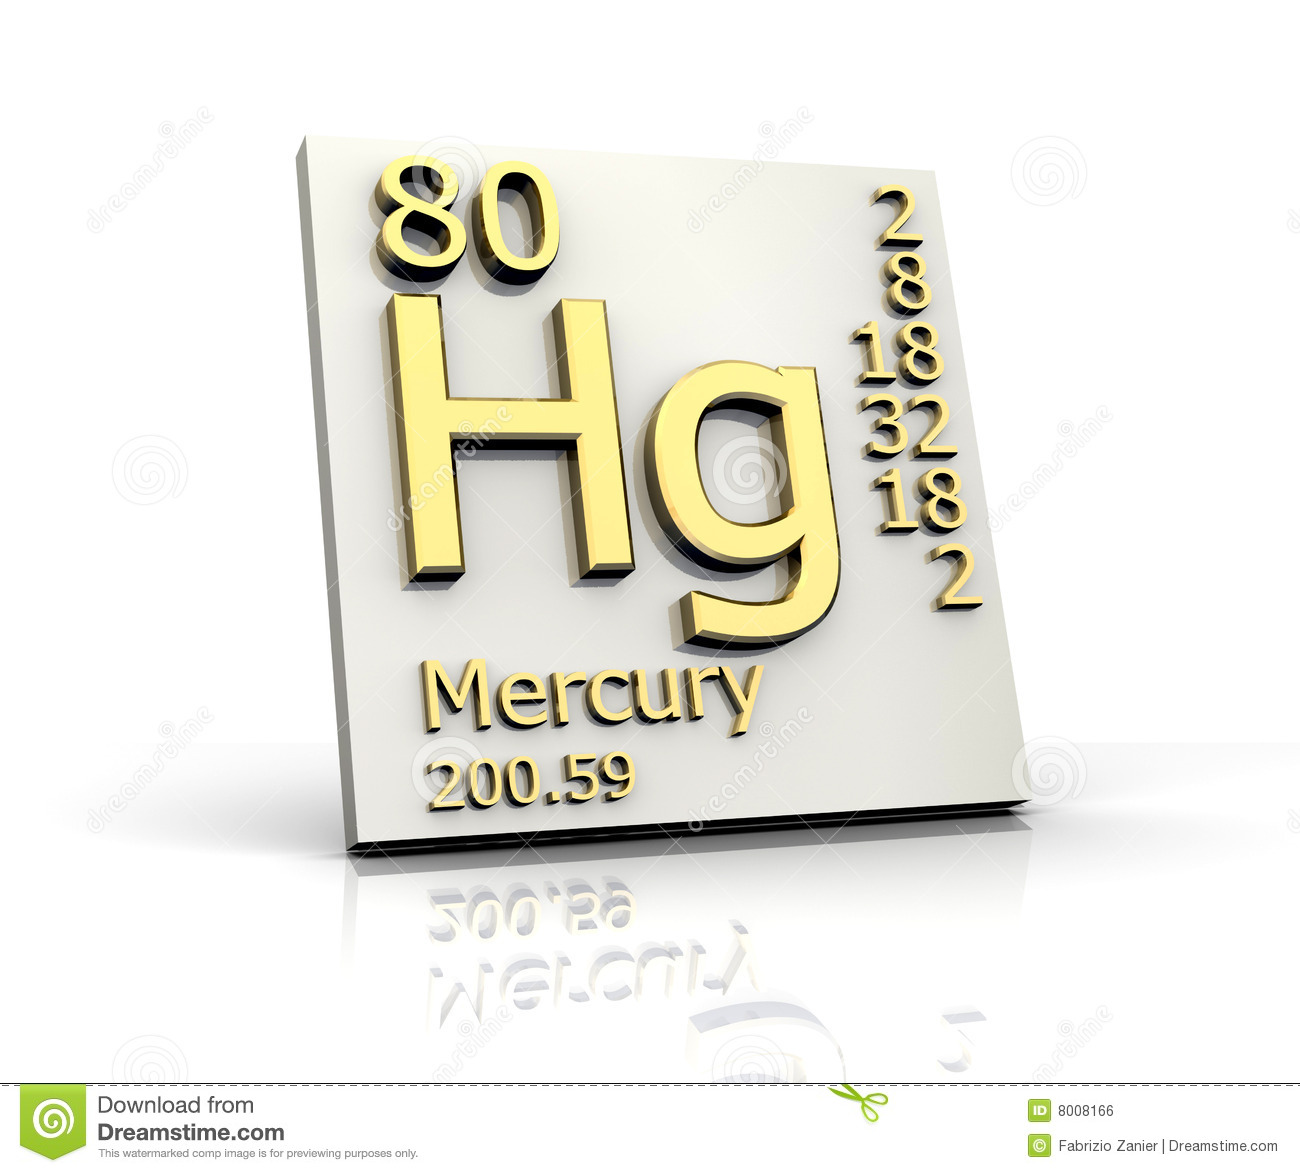 Mercury form periodic table of elements stock illustration royalty free stock photo buycottarizona Gallery